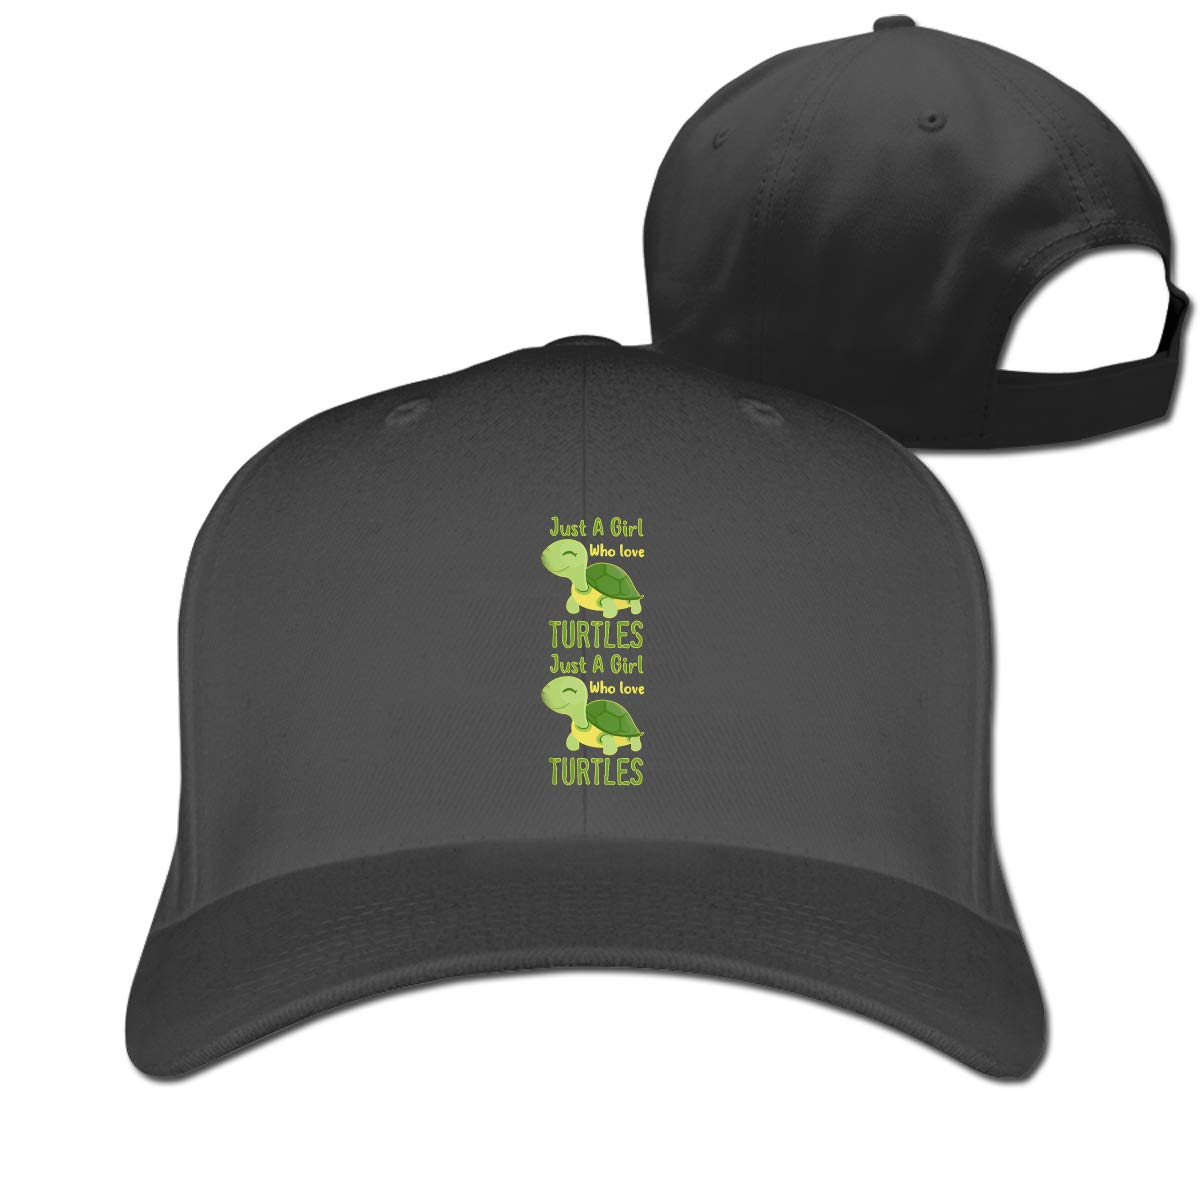 Just A Girl Who Loves Turtles Fashion Adjustable Cotton Baseball Caps Trucker Driver Hat Outdoor Cap Black